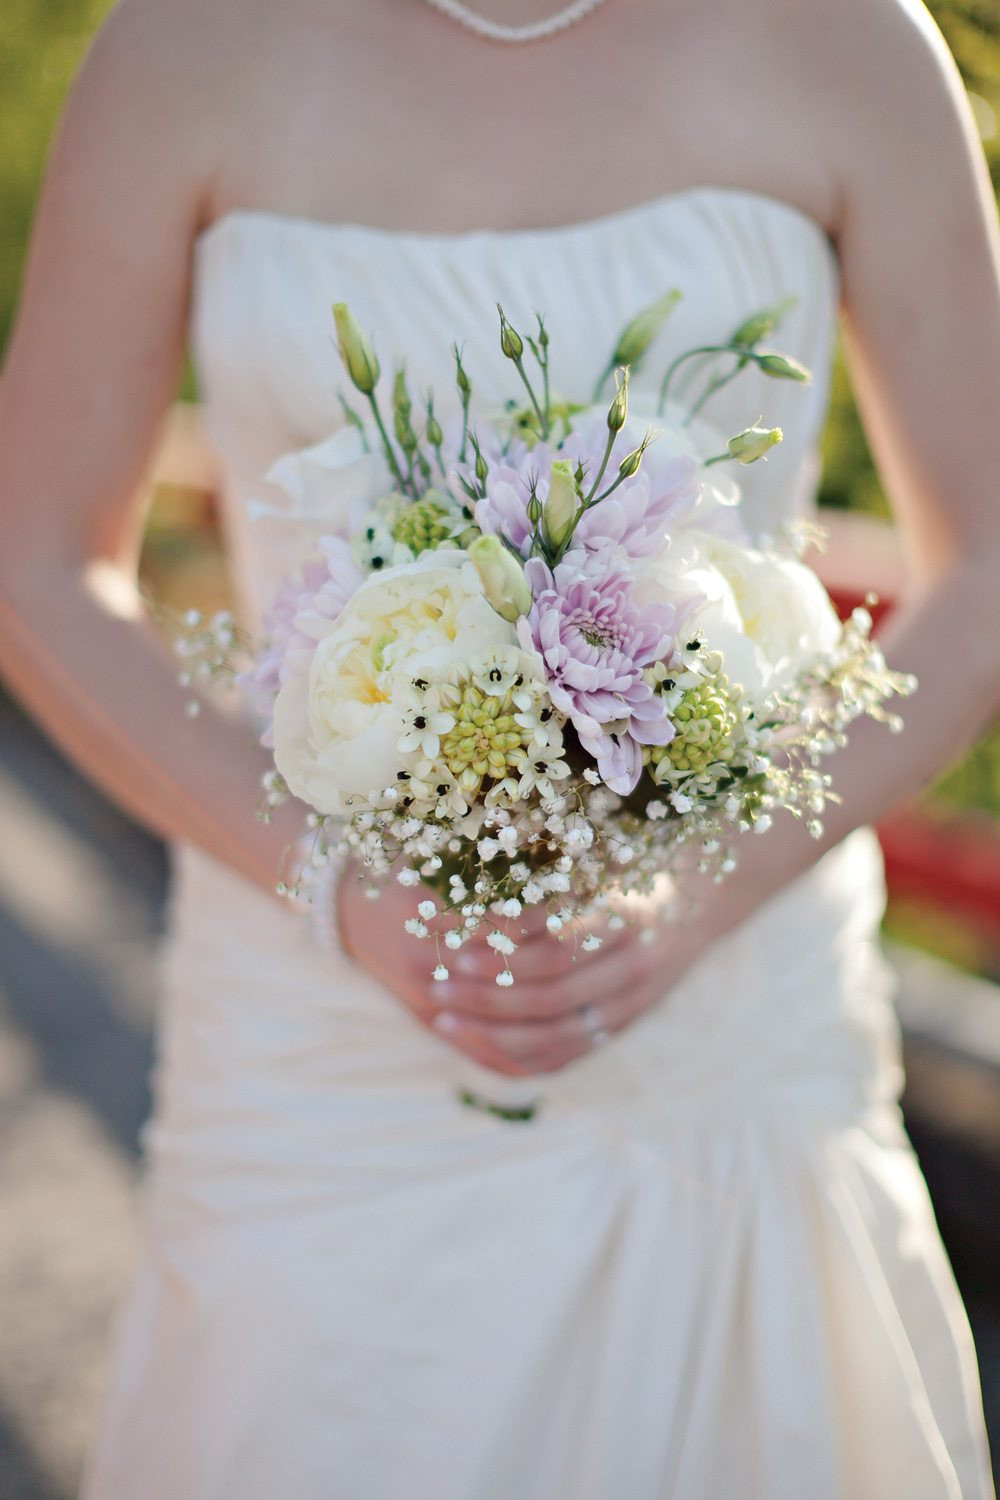 Best ideas about DIY Flowers For Wedding . Save or Pin A Personal DIY Wedding in Fort Langley British Columbia Now.